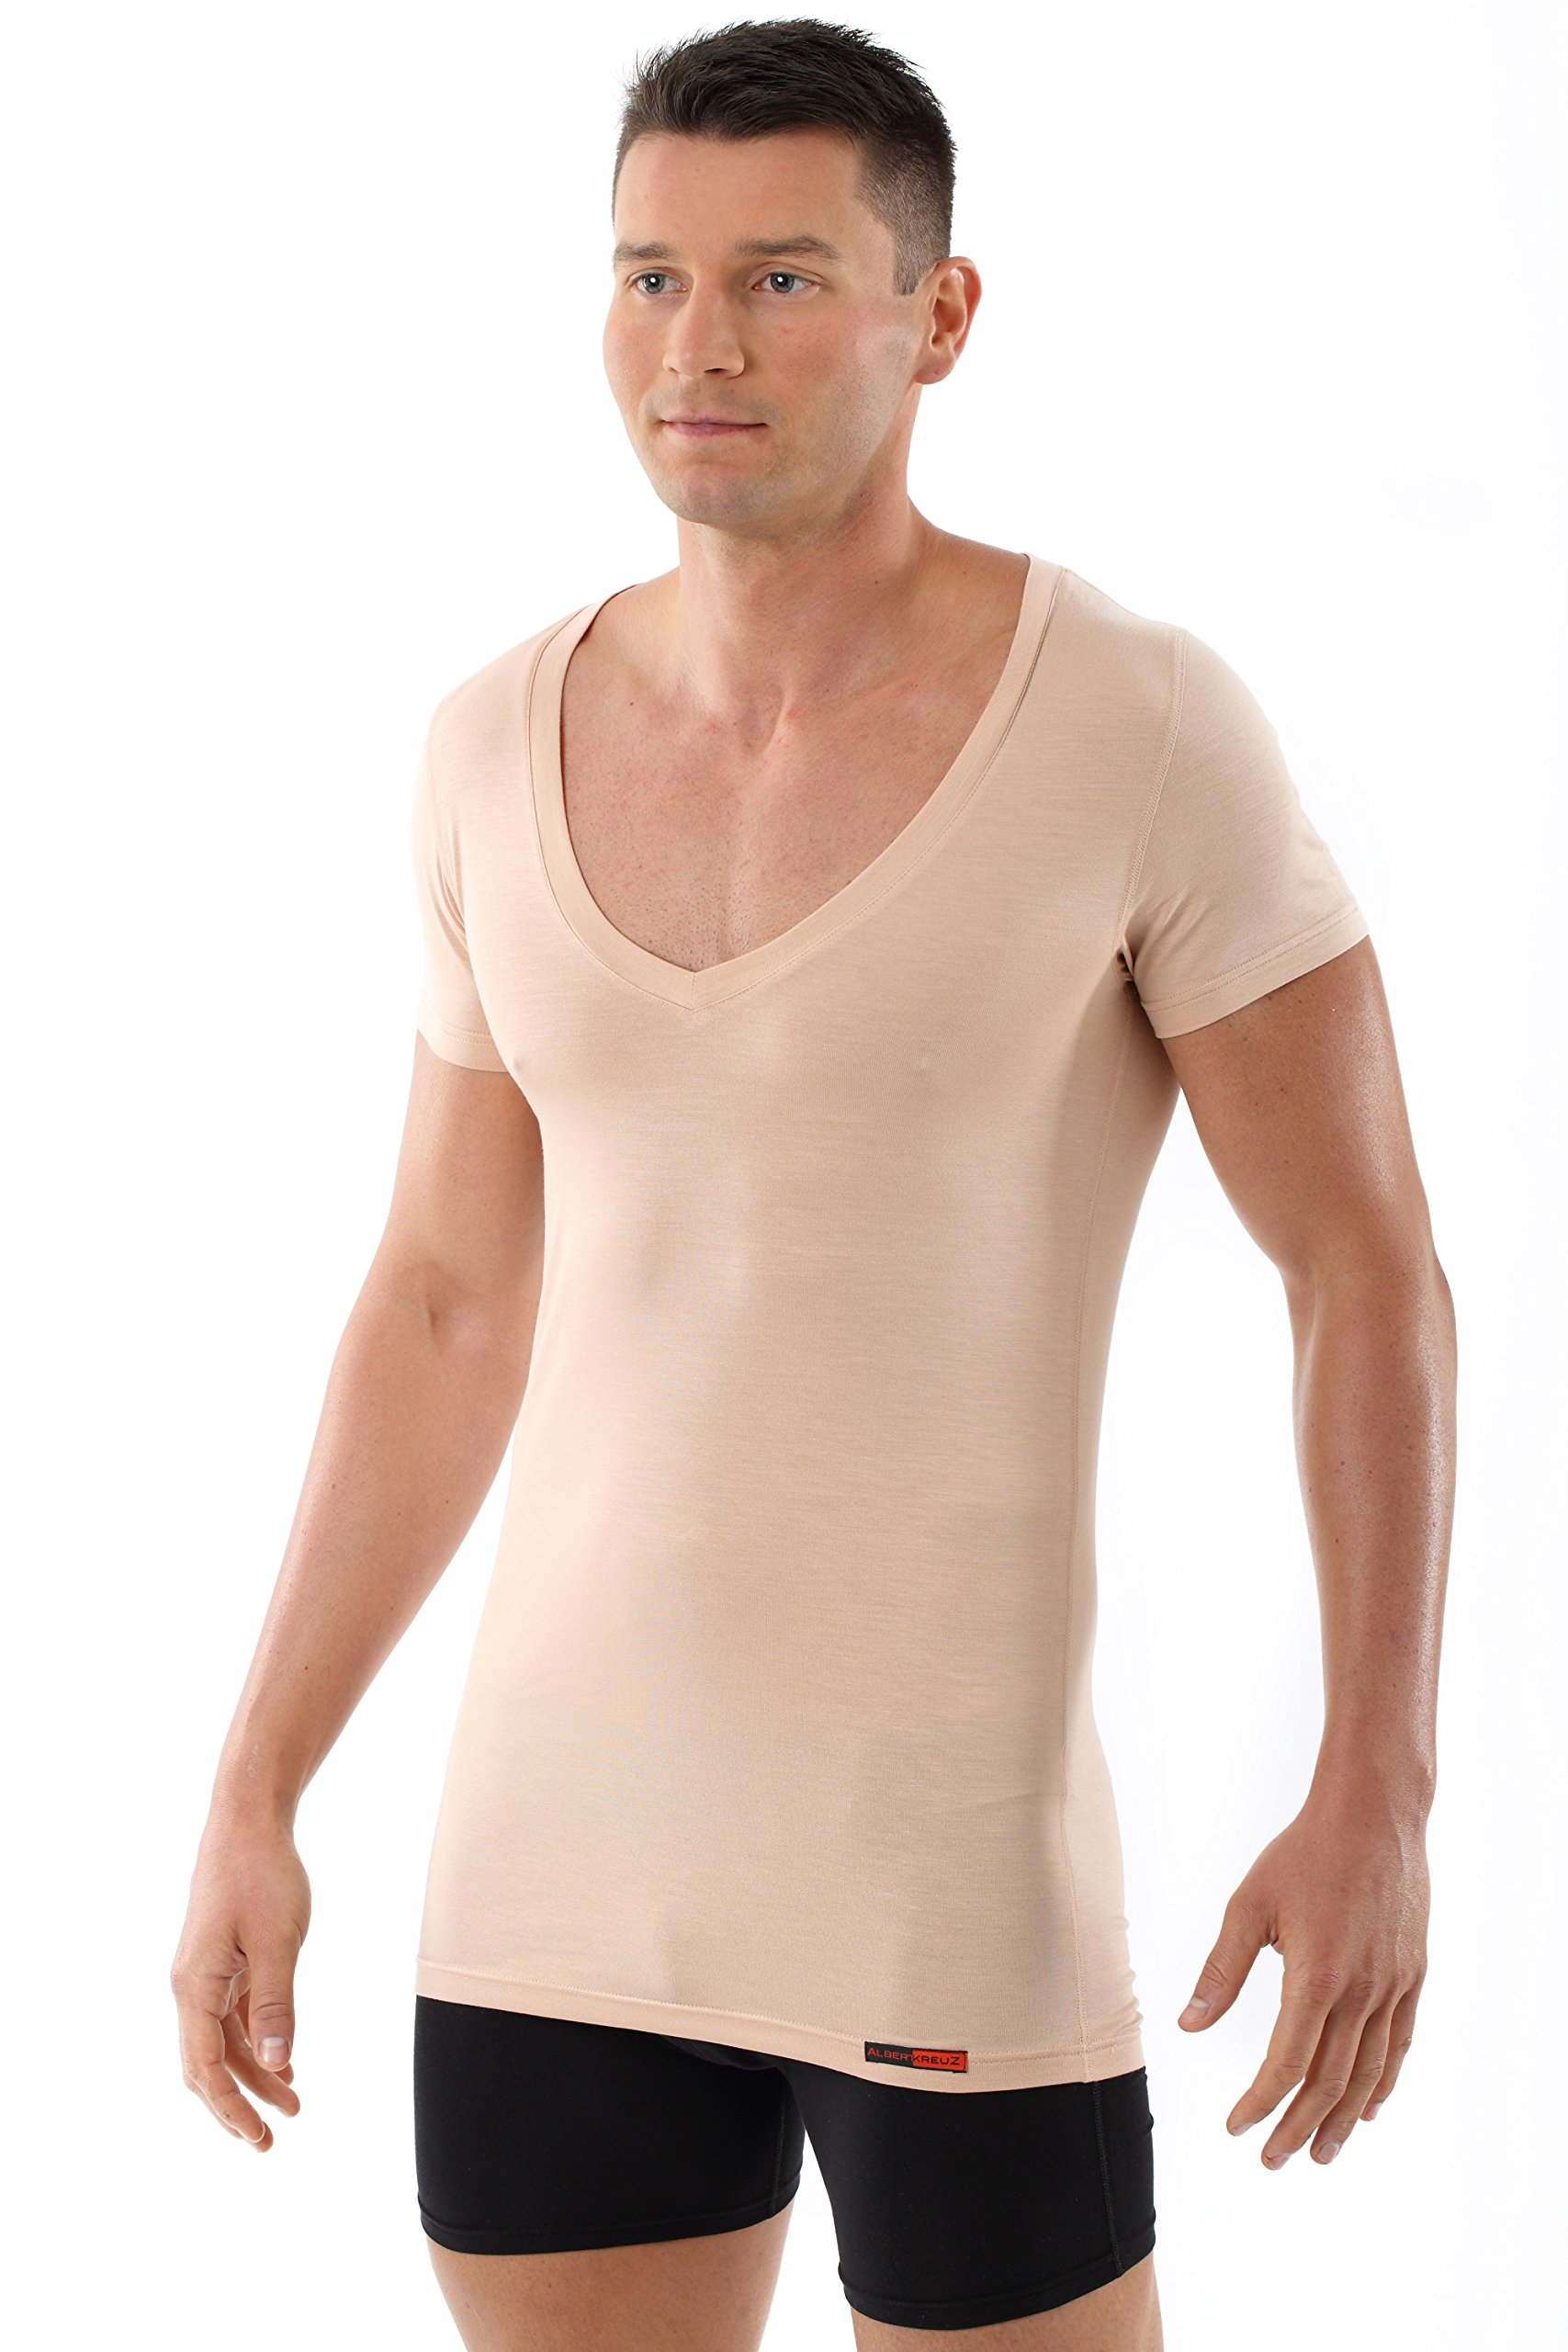 ALBERT KREUZ men's invisible deep V-neck business undershirt with short sleeves of breathable Micromodal Light nude beige XXL by ALBERT KREUZ